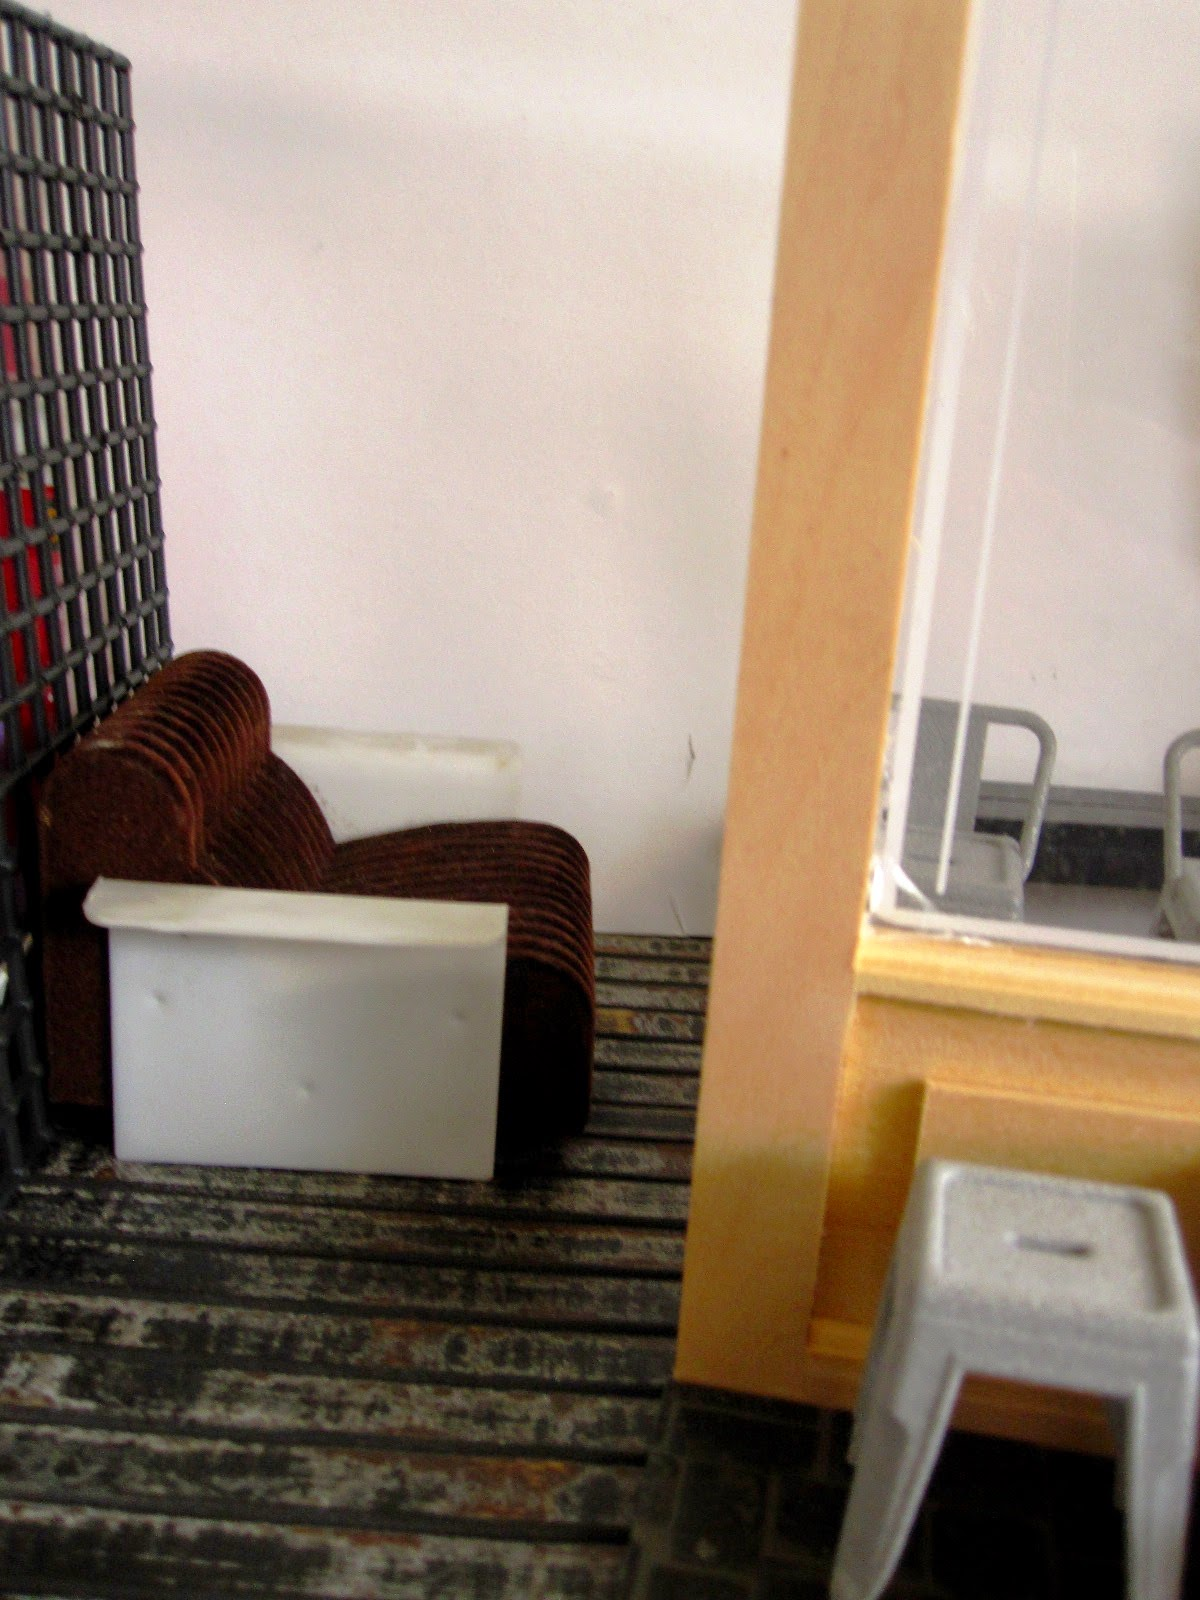 View through a mock up of the front of a modern dolls' house miniature cafe showing a lounge chair and several cafe chairs.